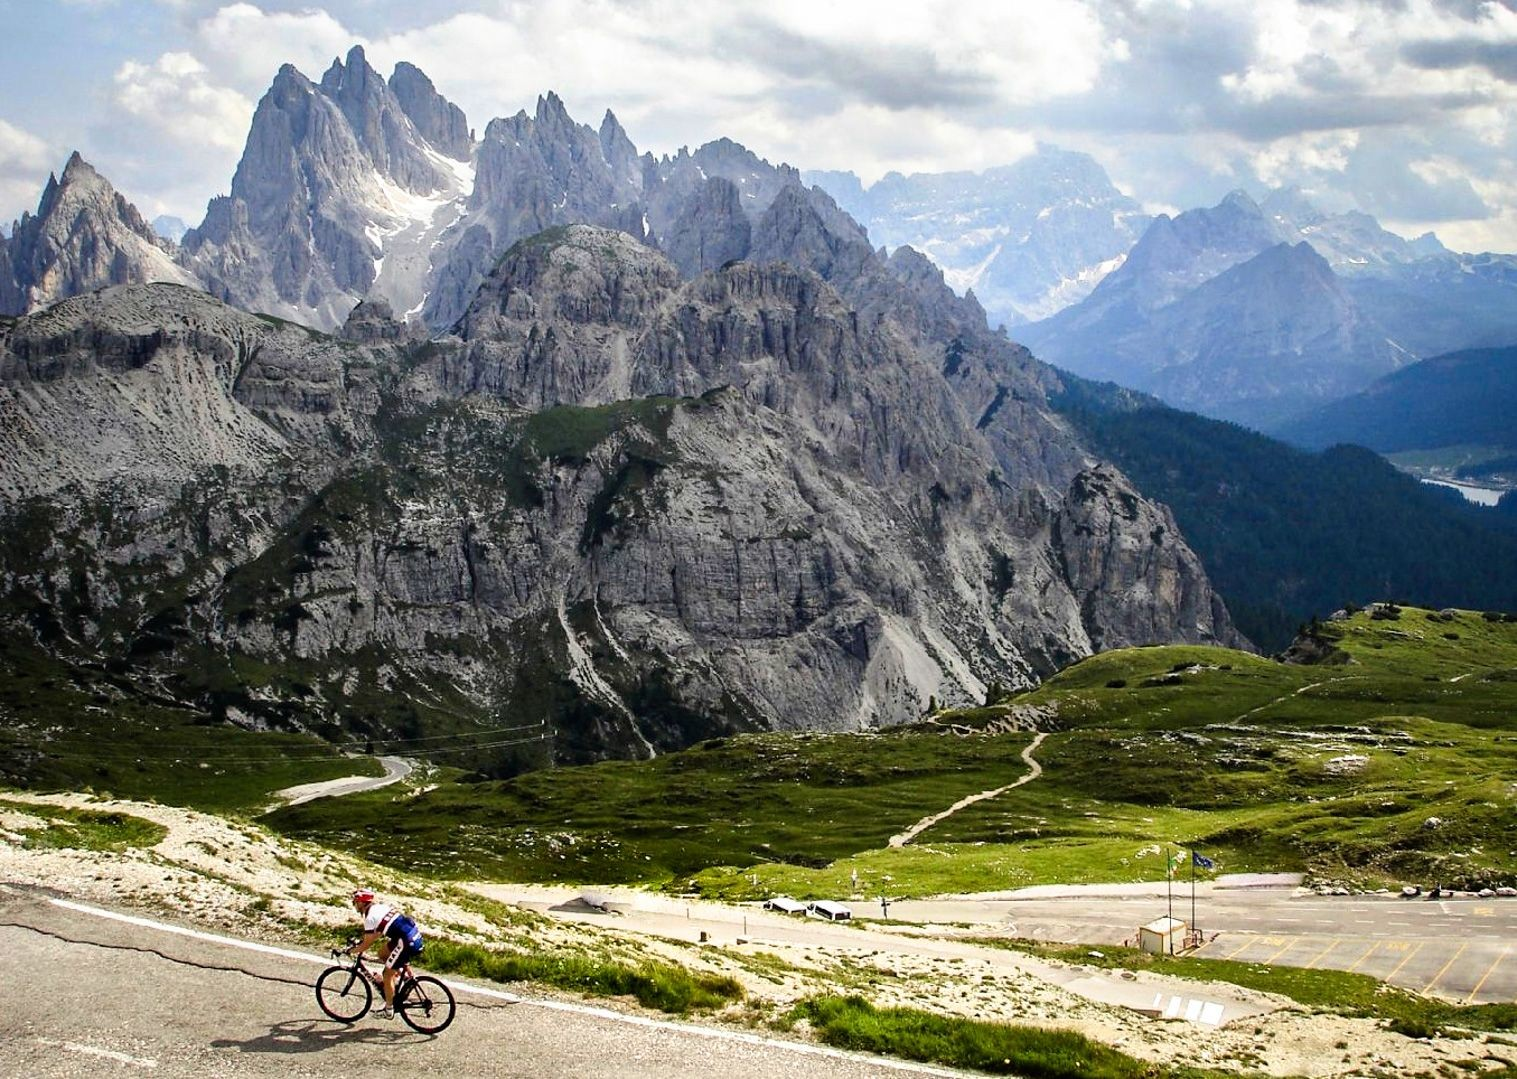 incredible-mountain-climbs-scenery-on-road-bike.jpg - Italy - Alps and Dolomites - Giants of the Giro - Guided Road Cycling Holiday - Road Cycling